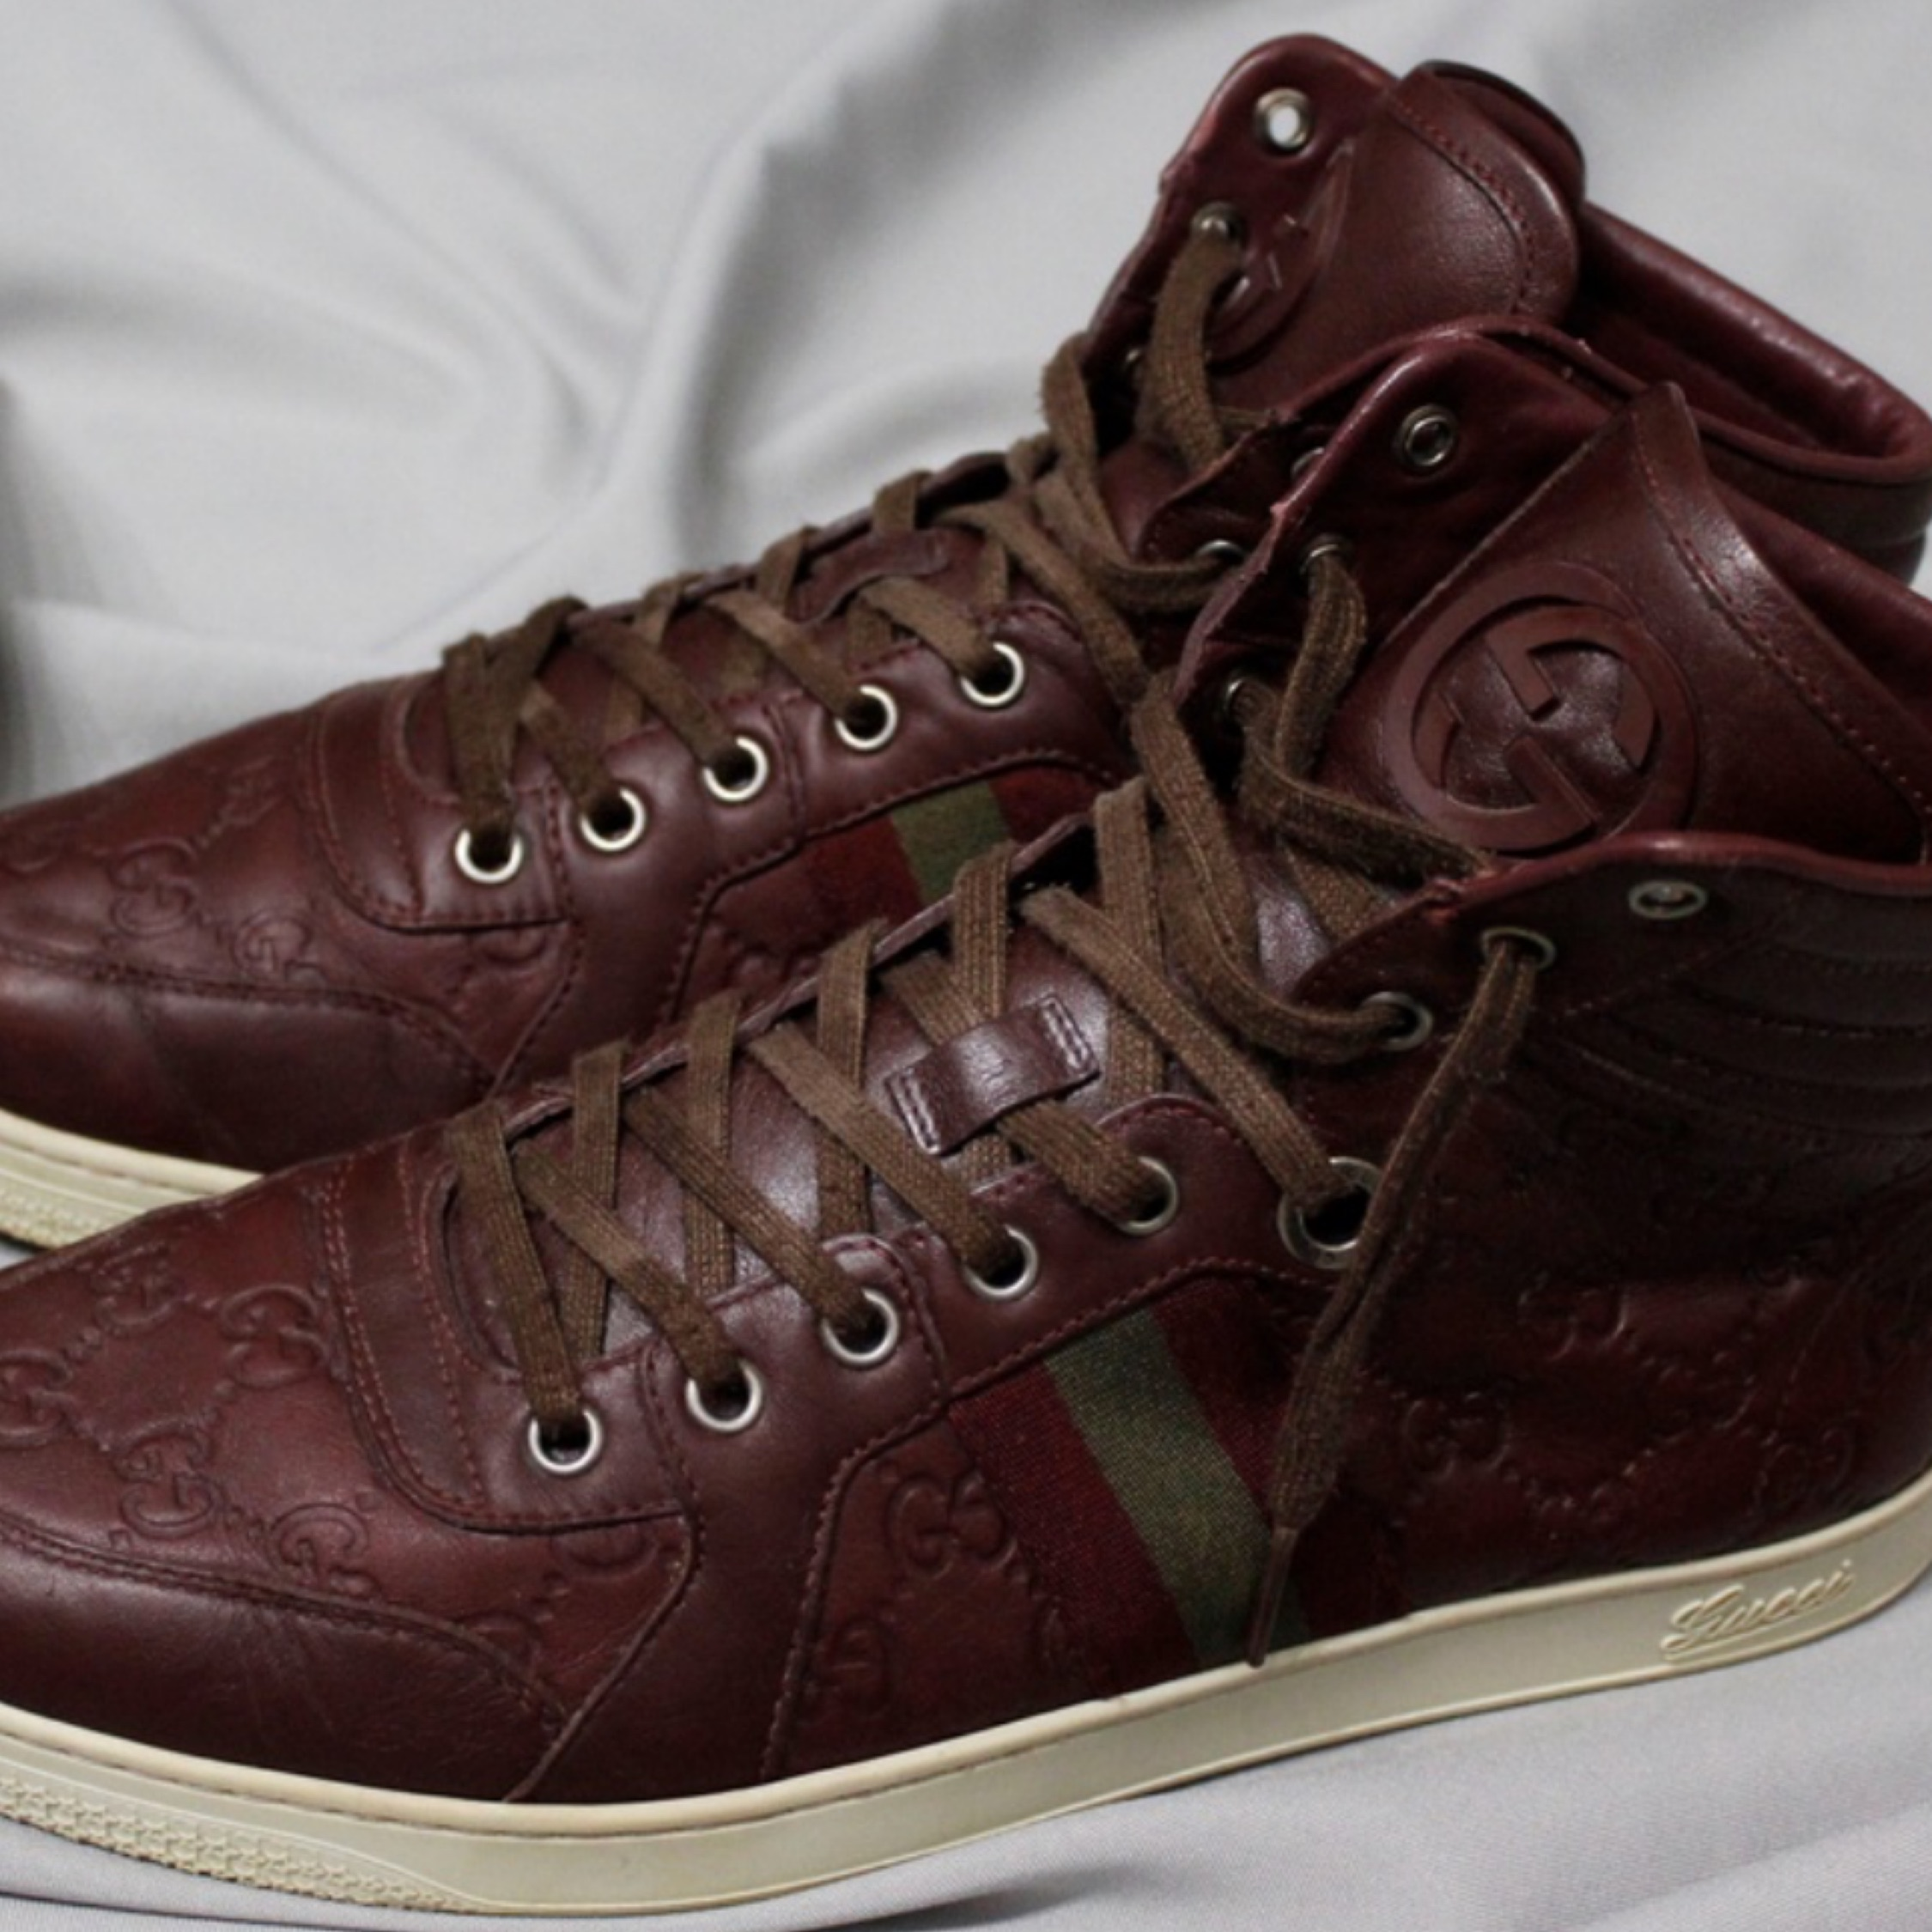 Gucci Guccissima Leather High Top Trainers